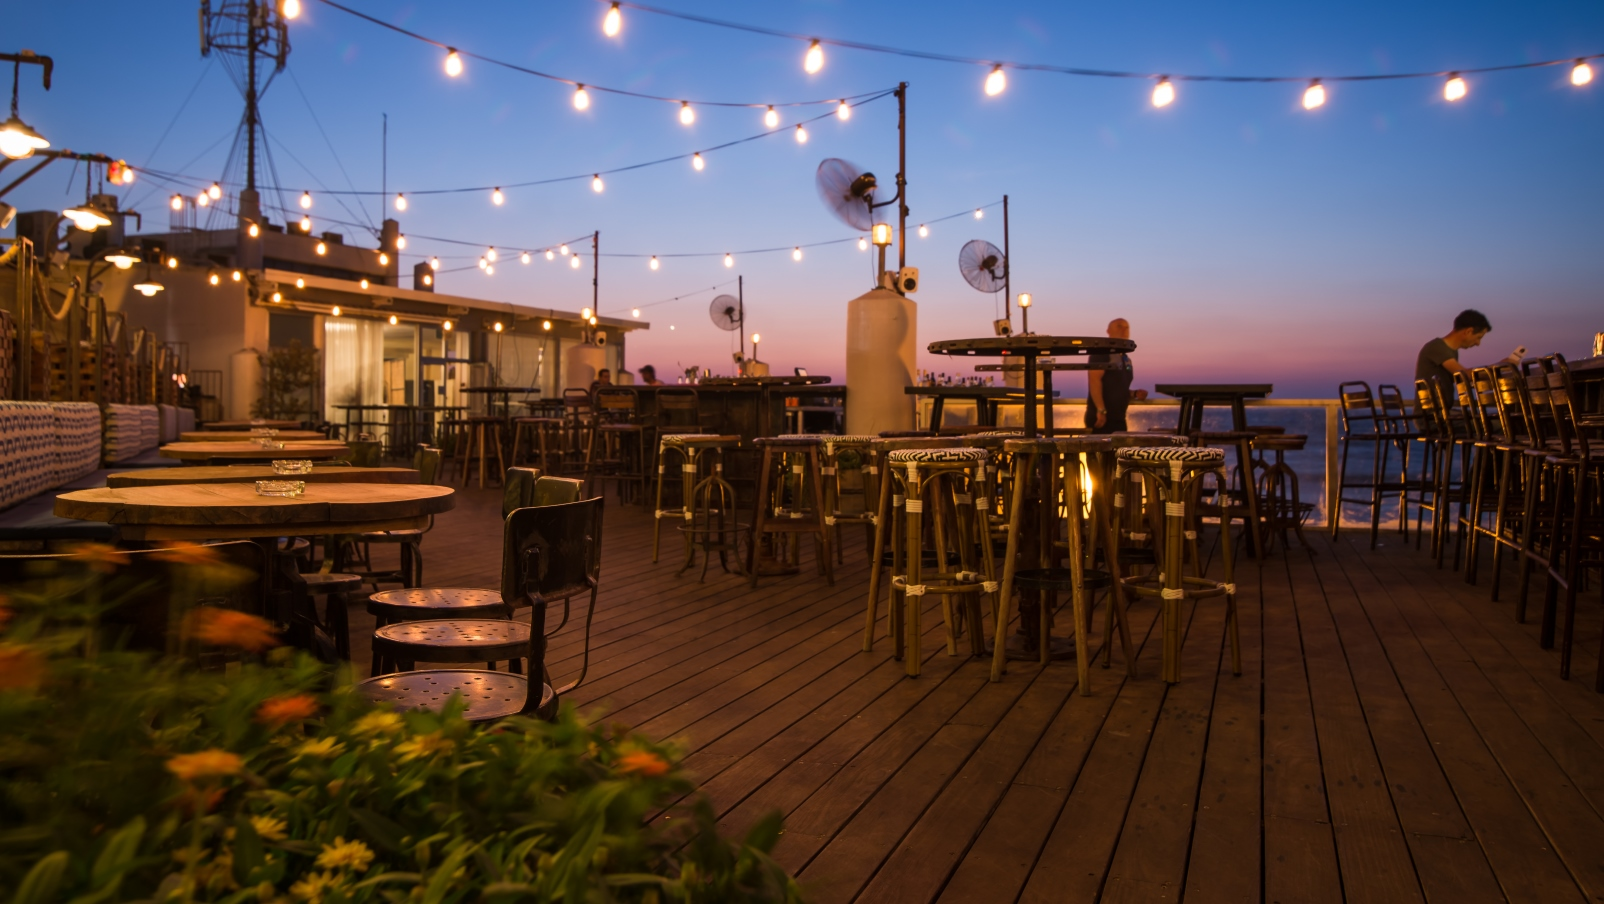 Israel S 10 Best Rooftop Bars To Party The Summer Nights Away Israel21c